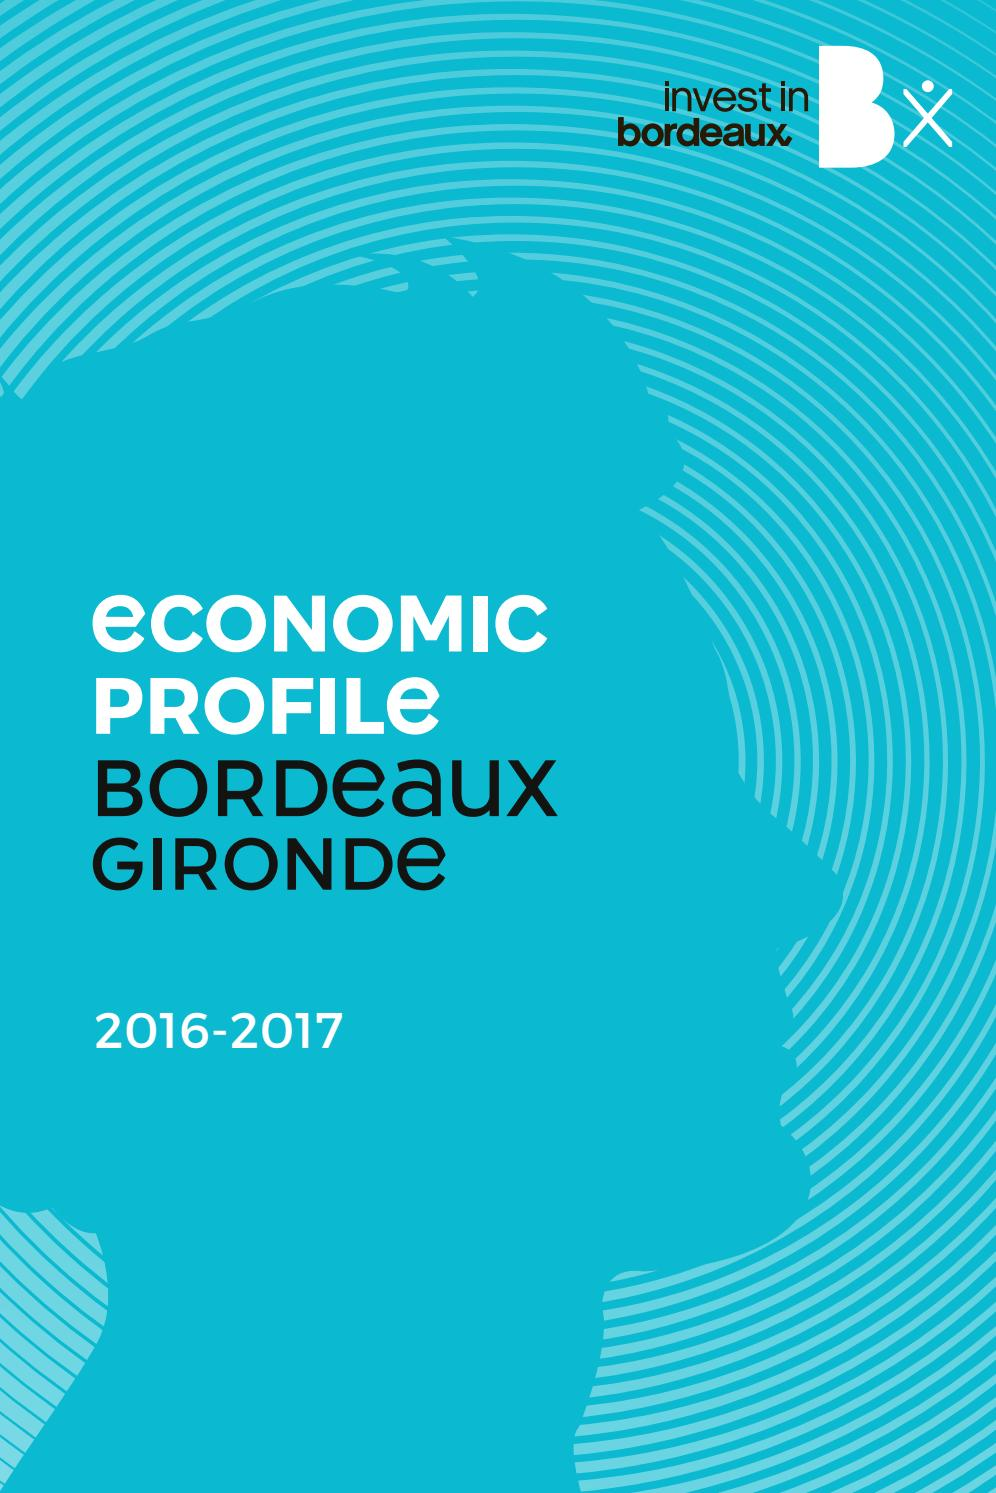 Bordeaux Economic Profile 2017 By Invest In Bordeaux Issuu